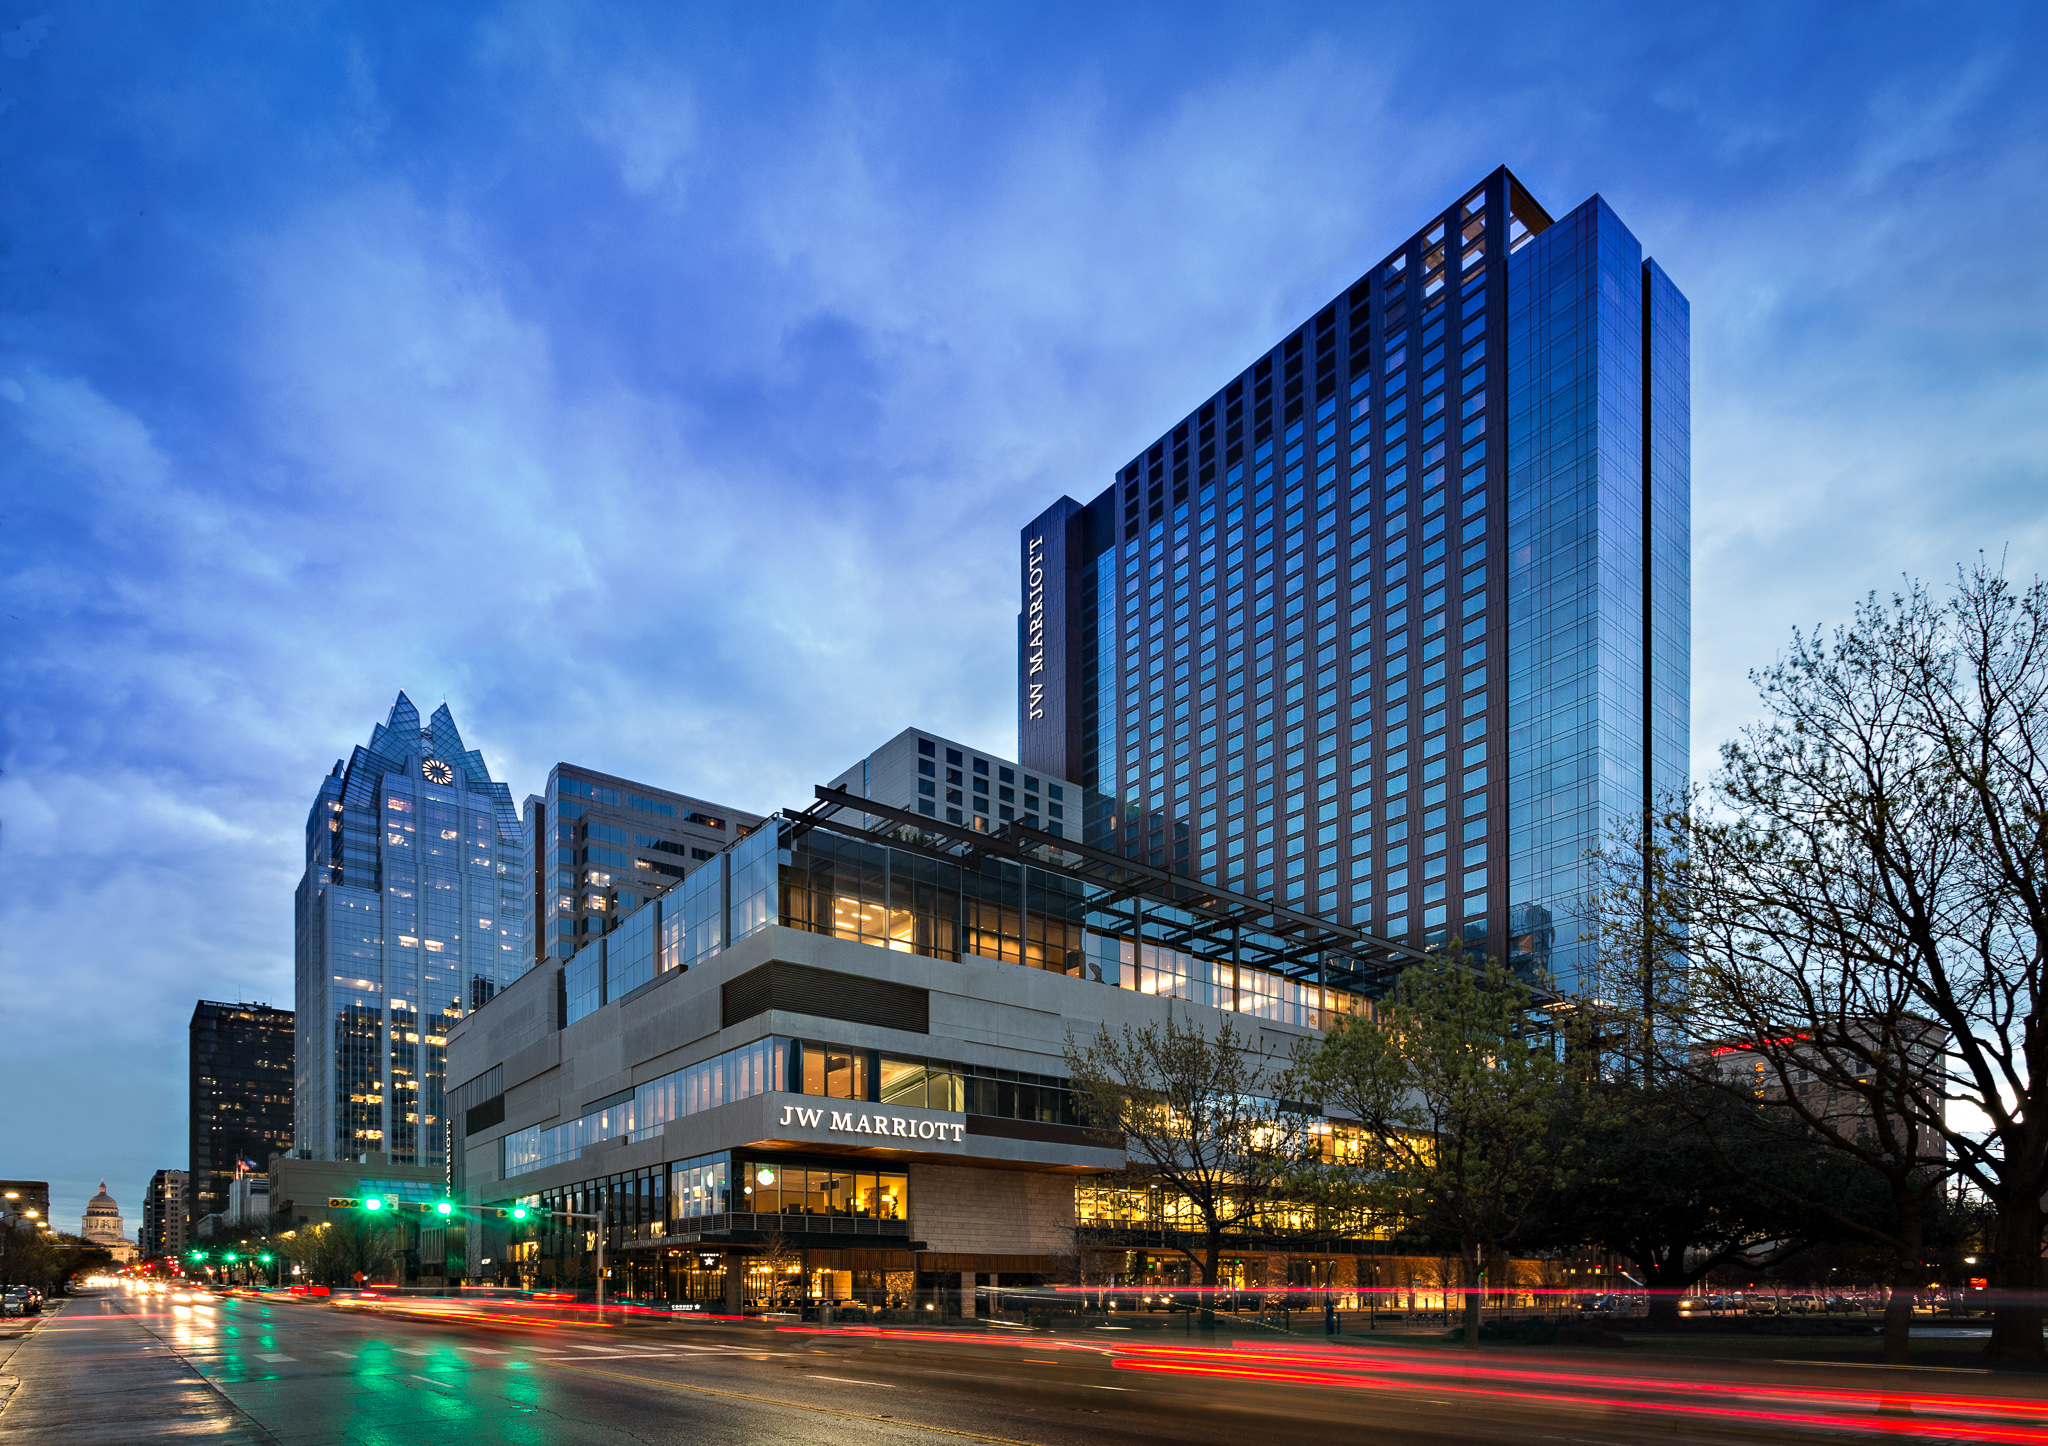 JW Marriott Austin image 0